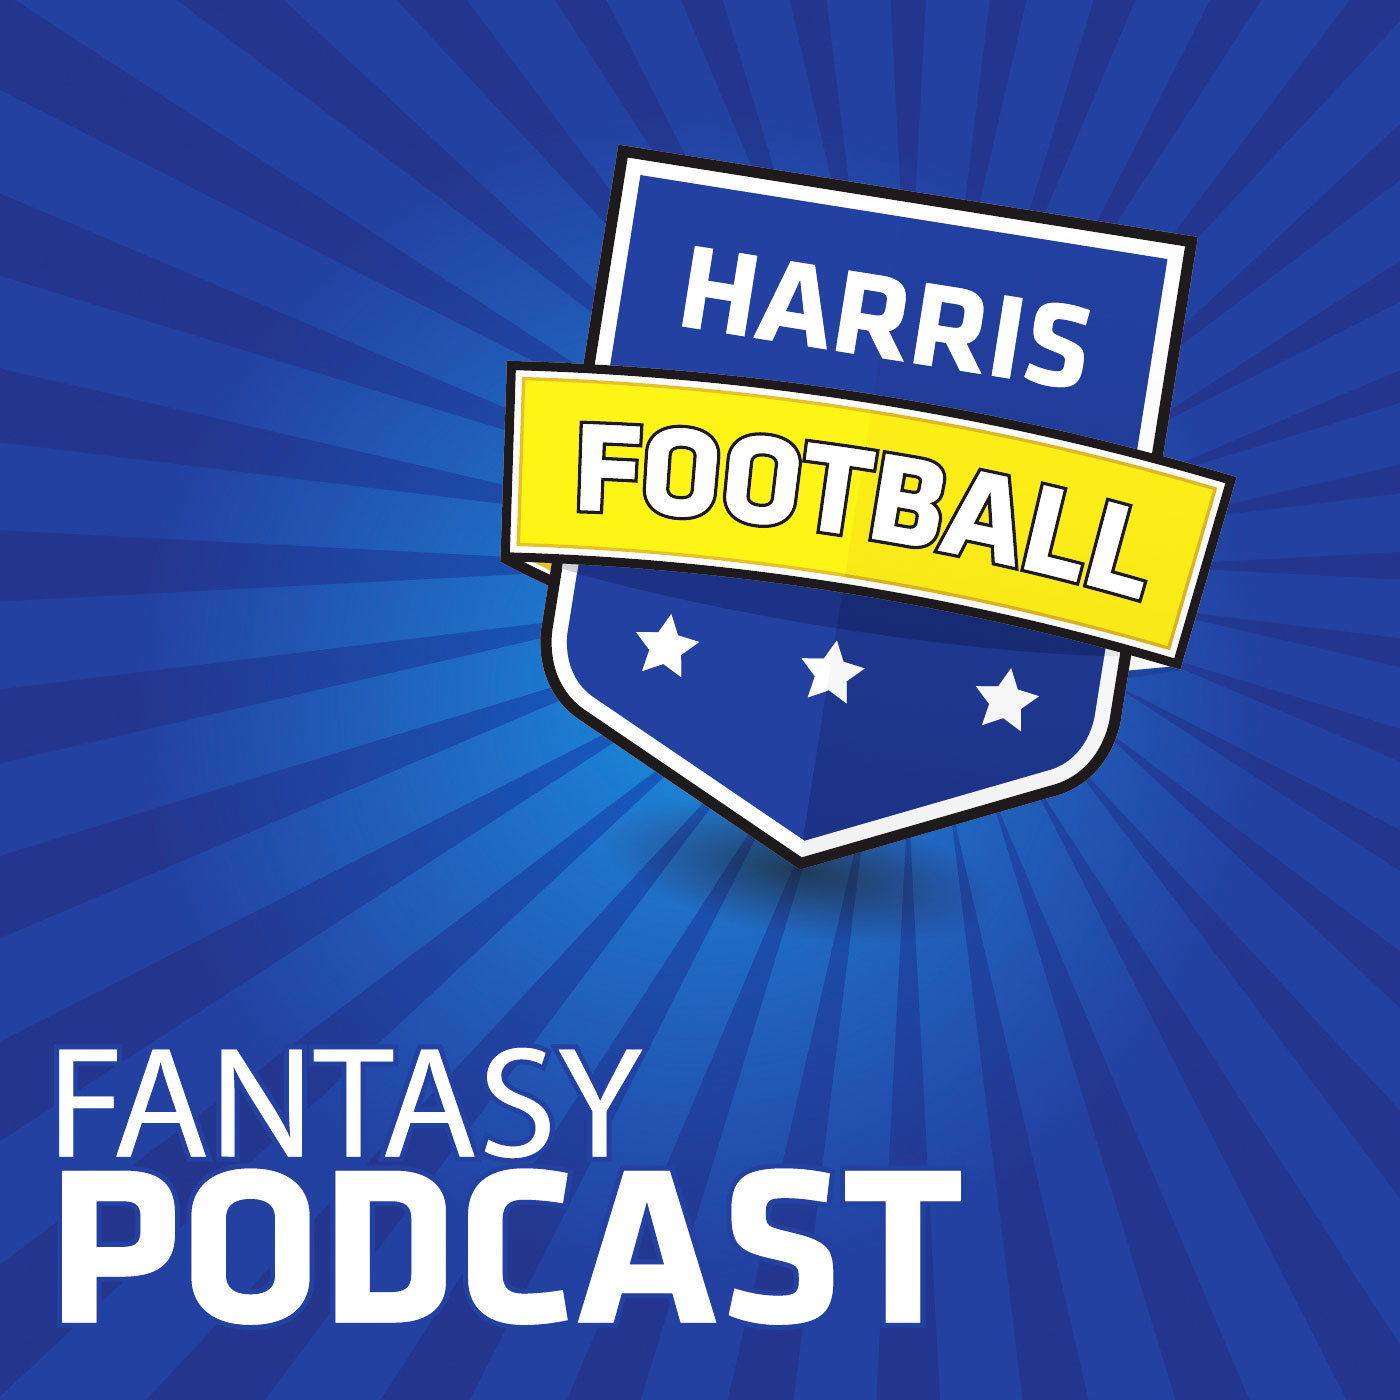 Harris Football Podcast